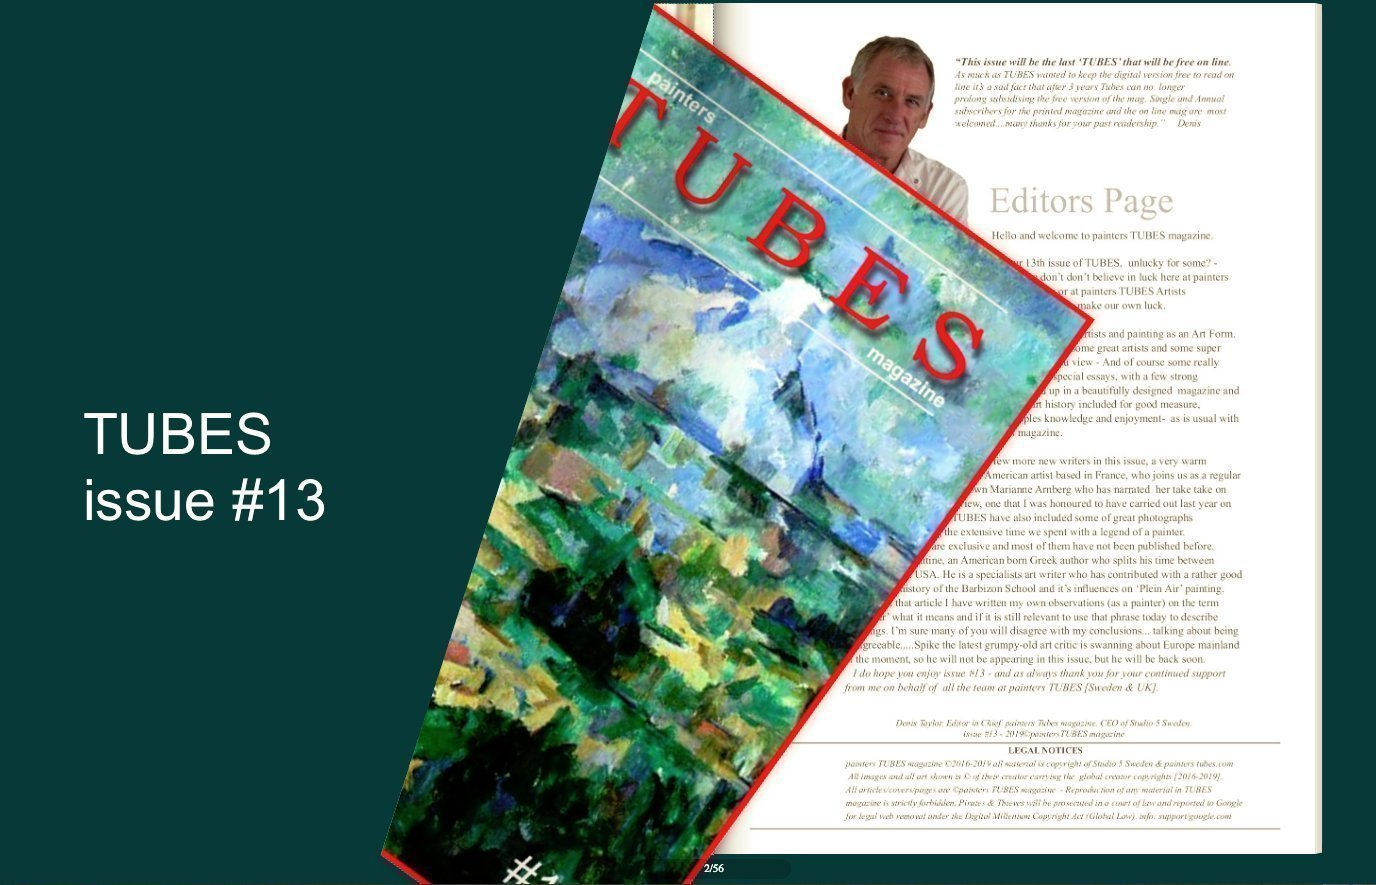 Tubes issue 13